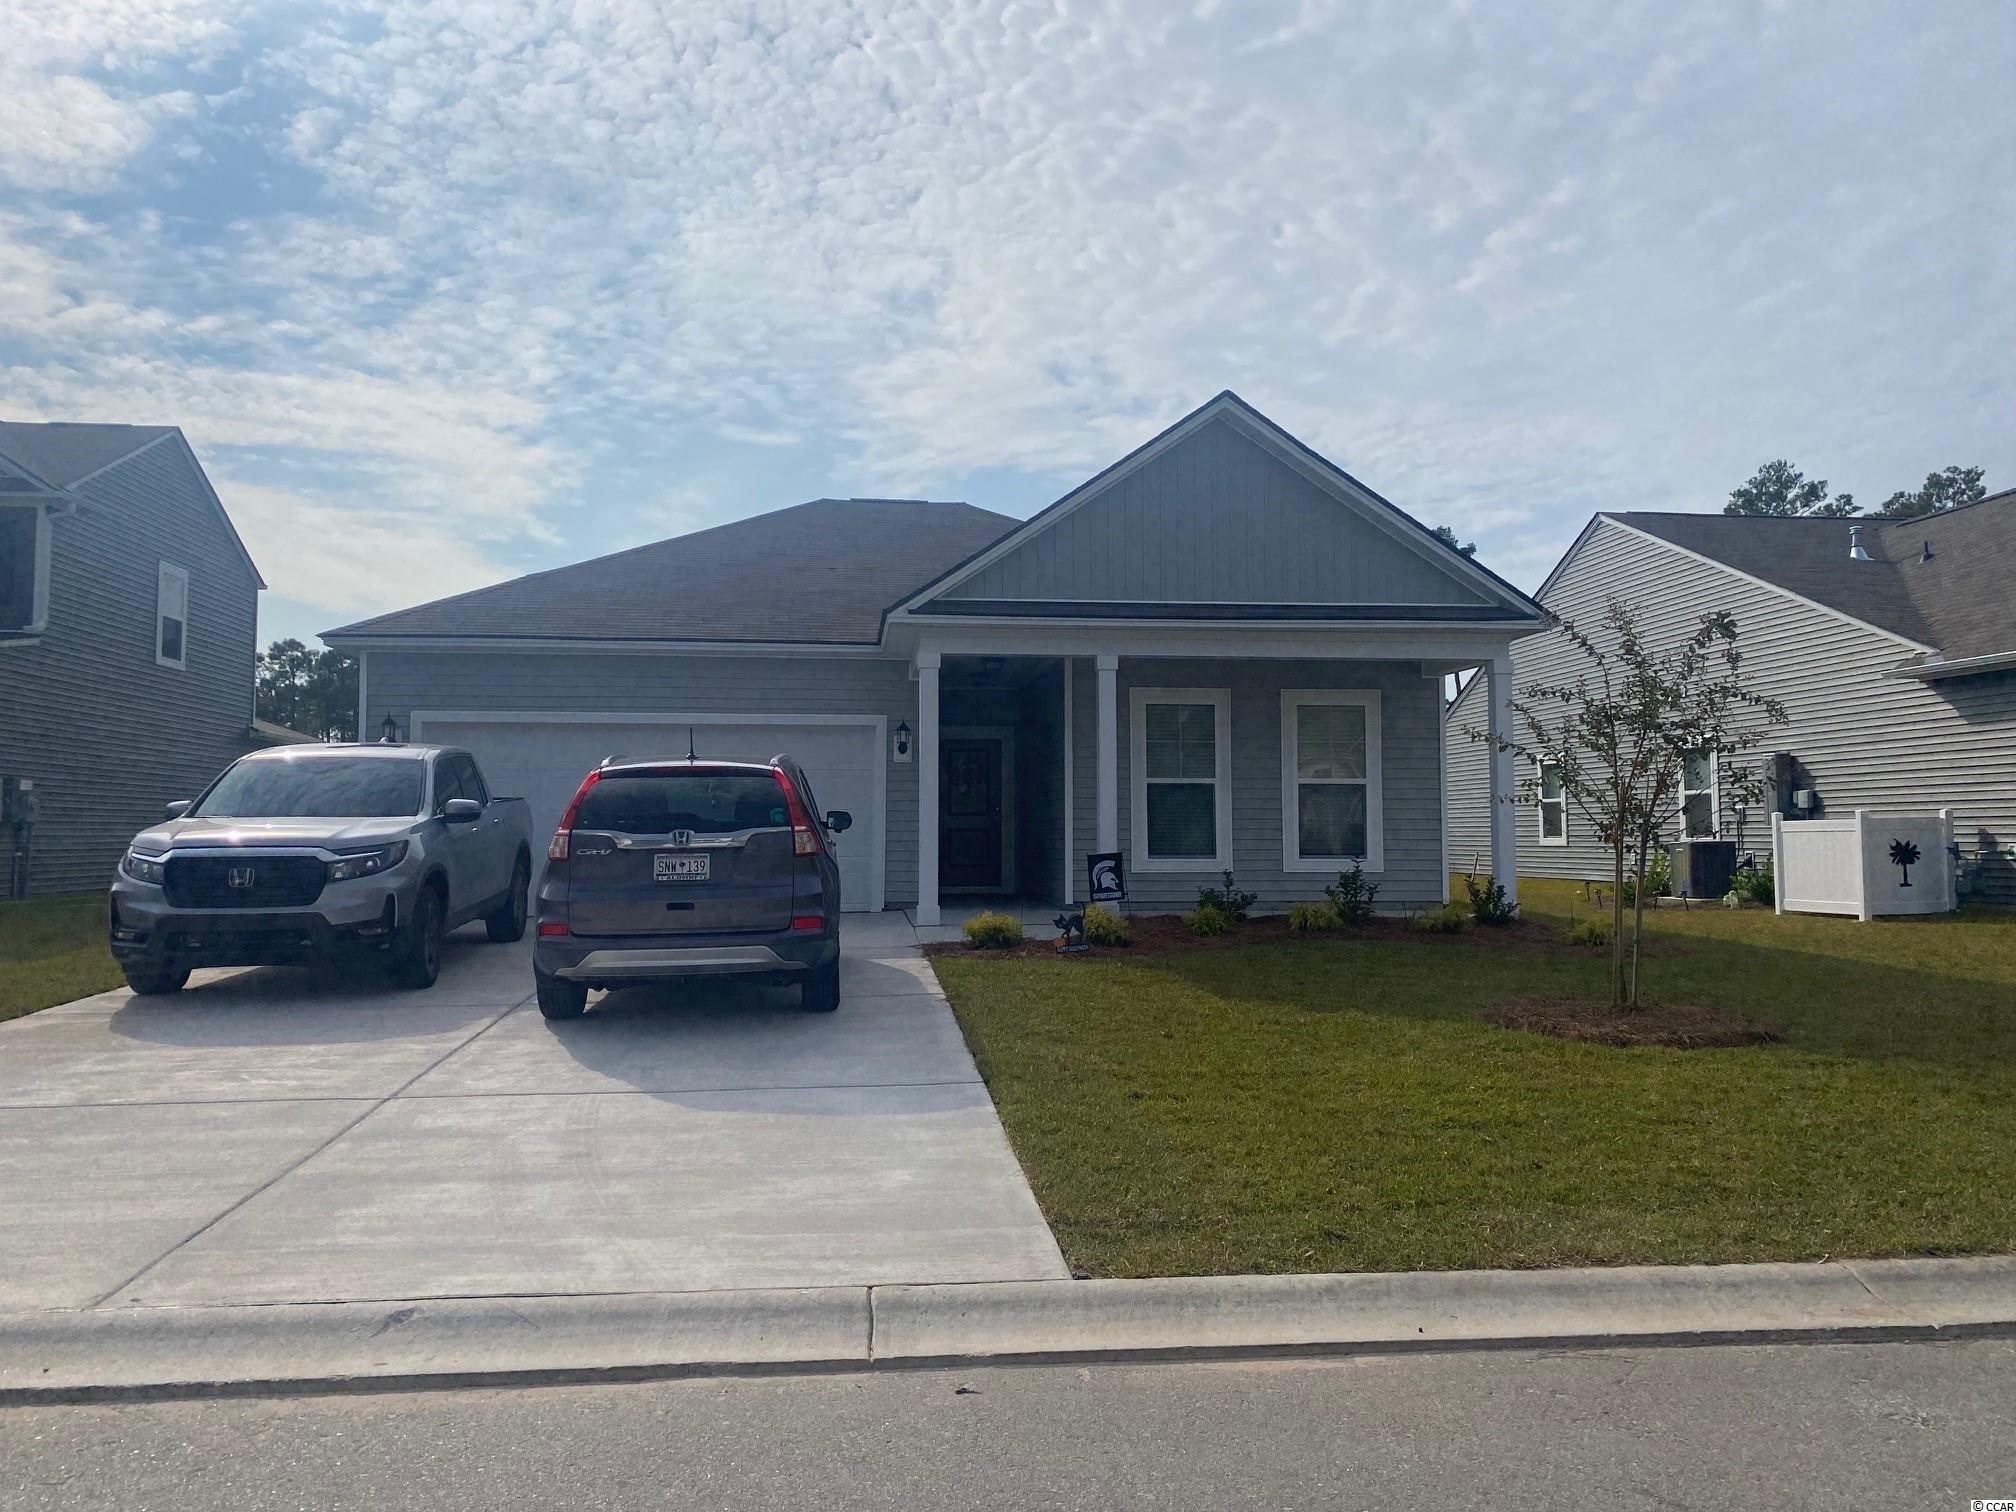 Very popular 3 bedroom 2 bath floor plan in Heritage preserve.  Screened in porch.  Hardwood throughout main living area.  Granite countertops and gas stainless steel appliances.